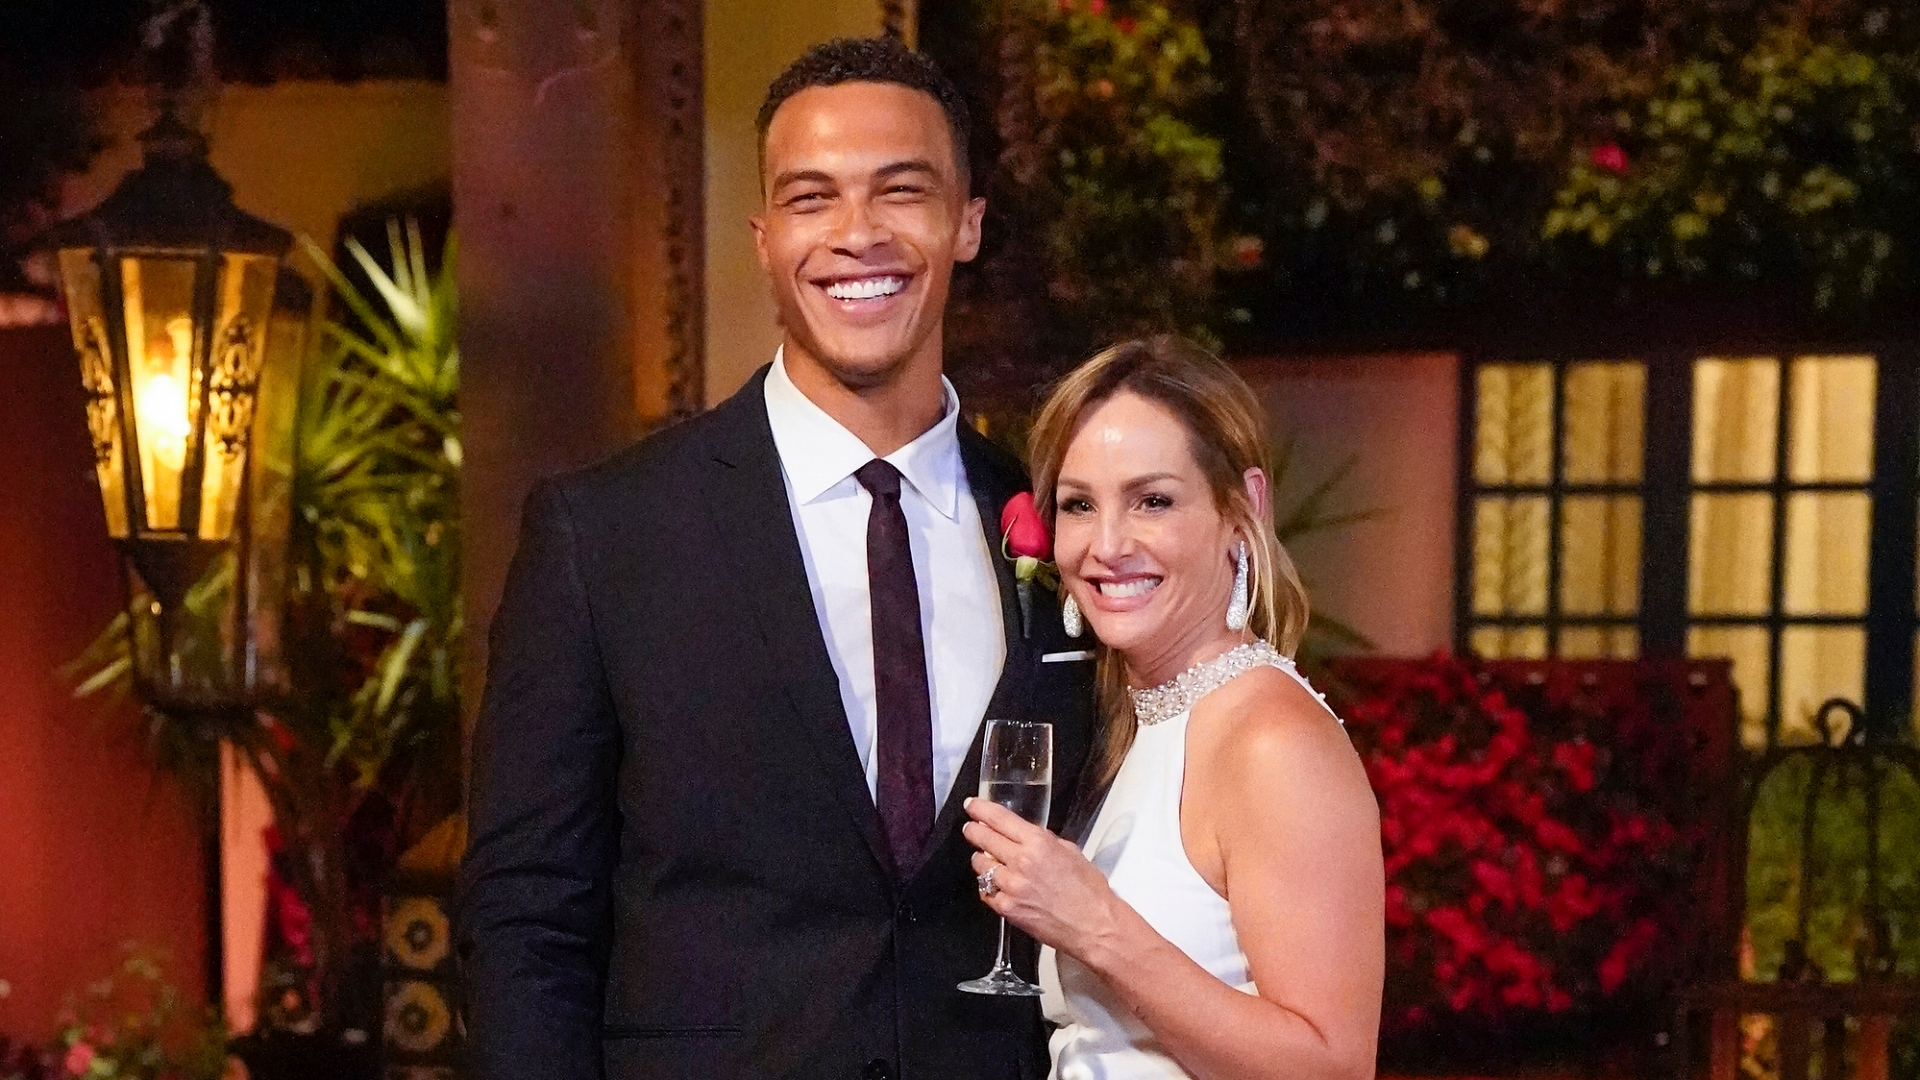 Spilling the Beans? Former Bachelorette Clare Crawley Calls Fiance Dale Moss Her 'Husband'